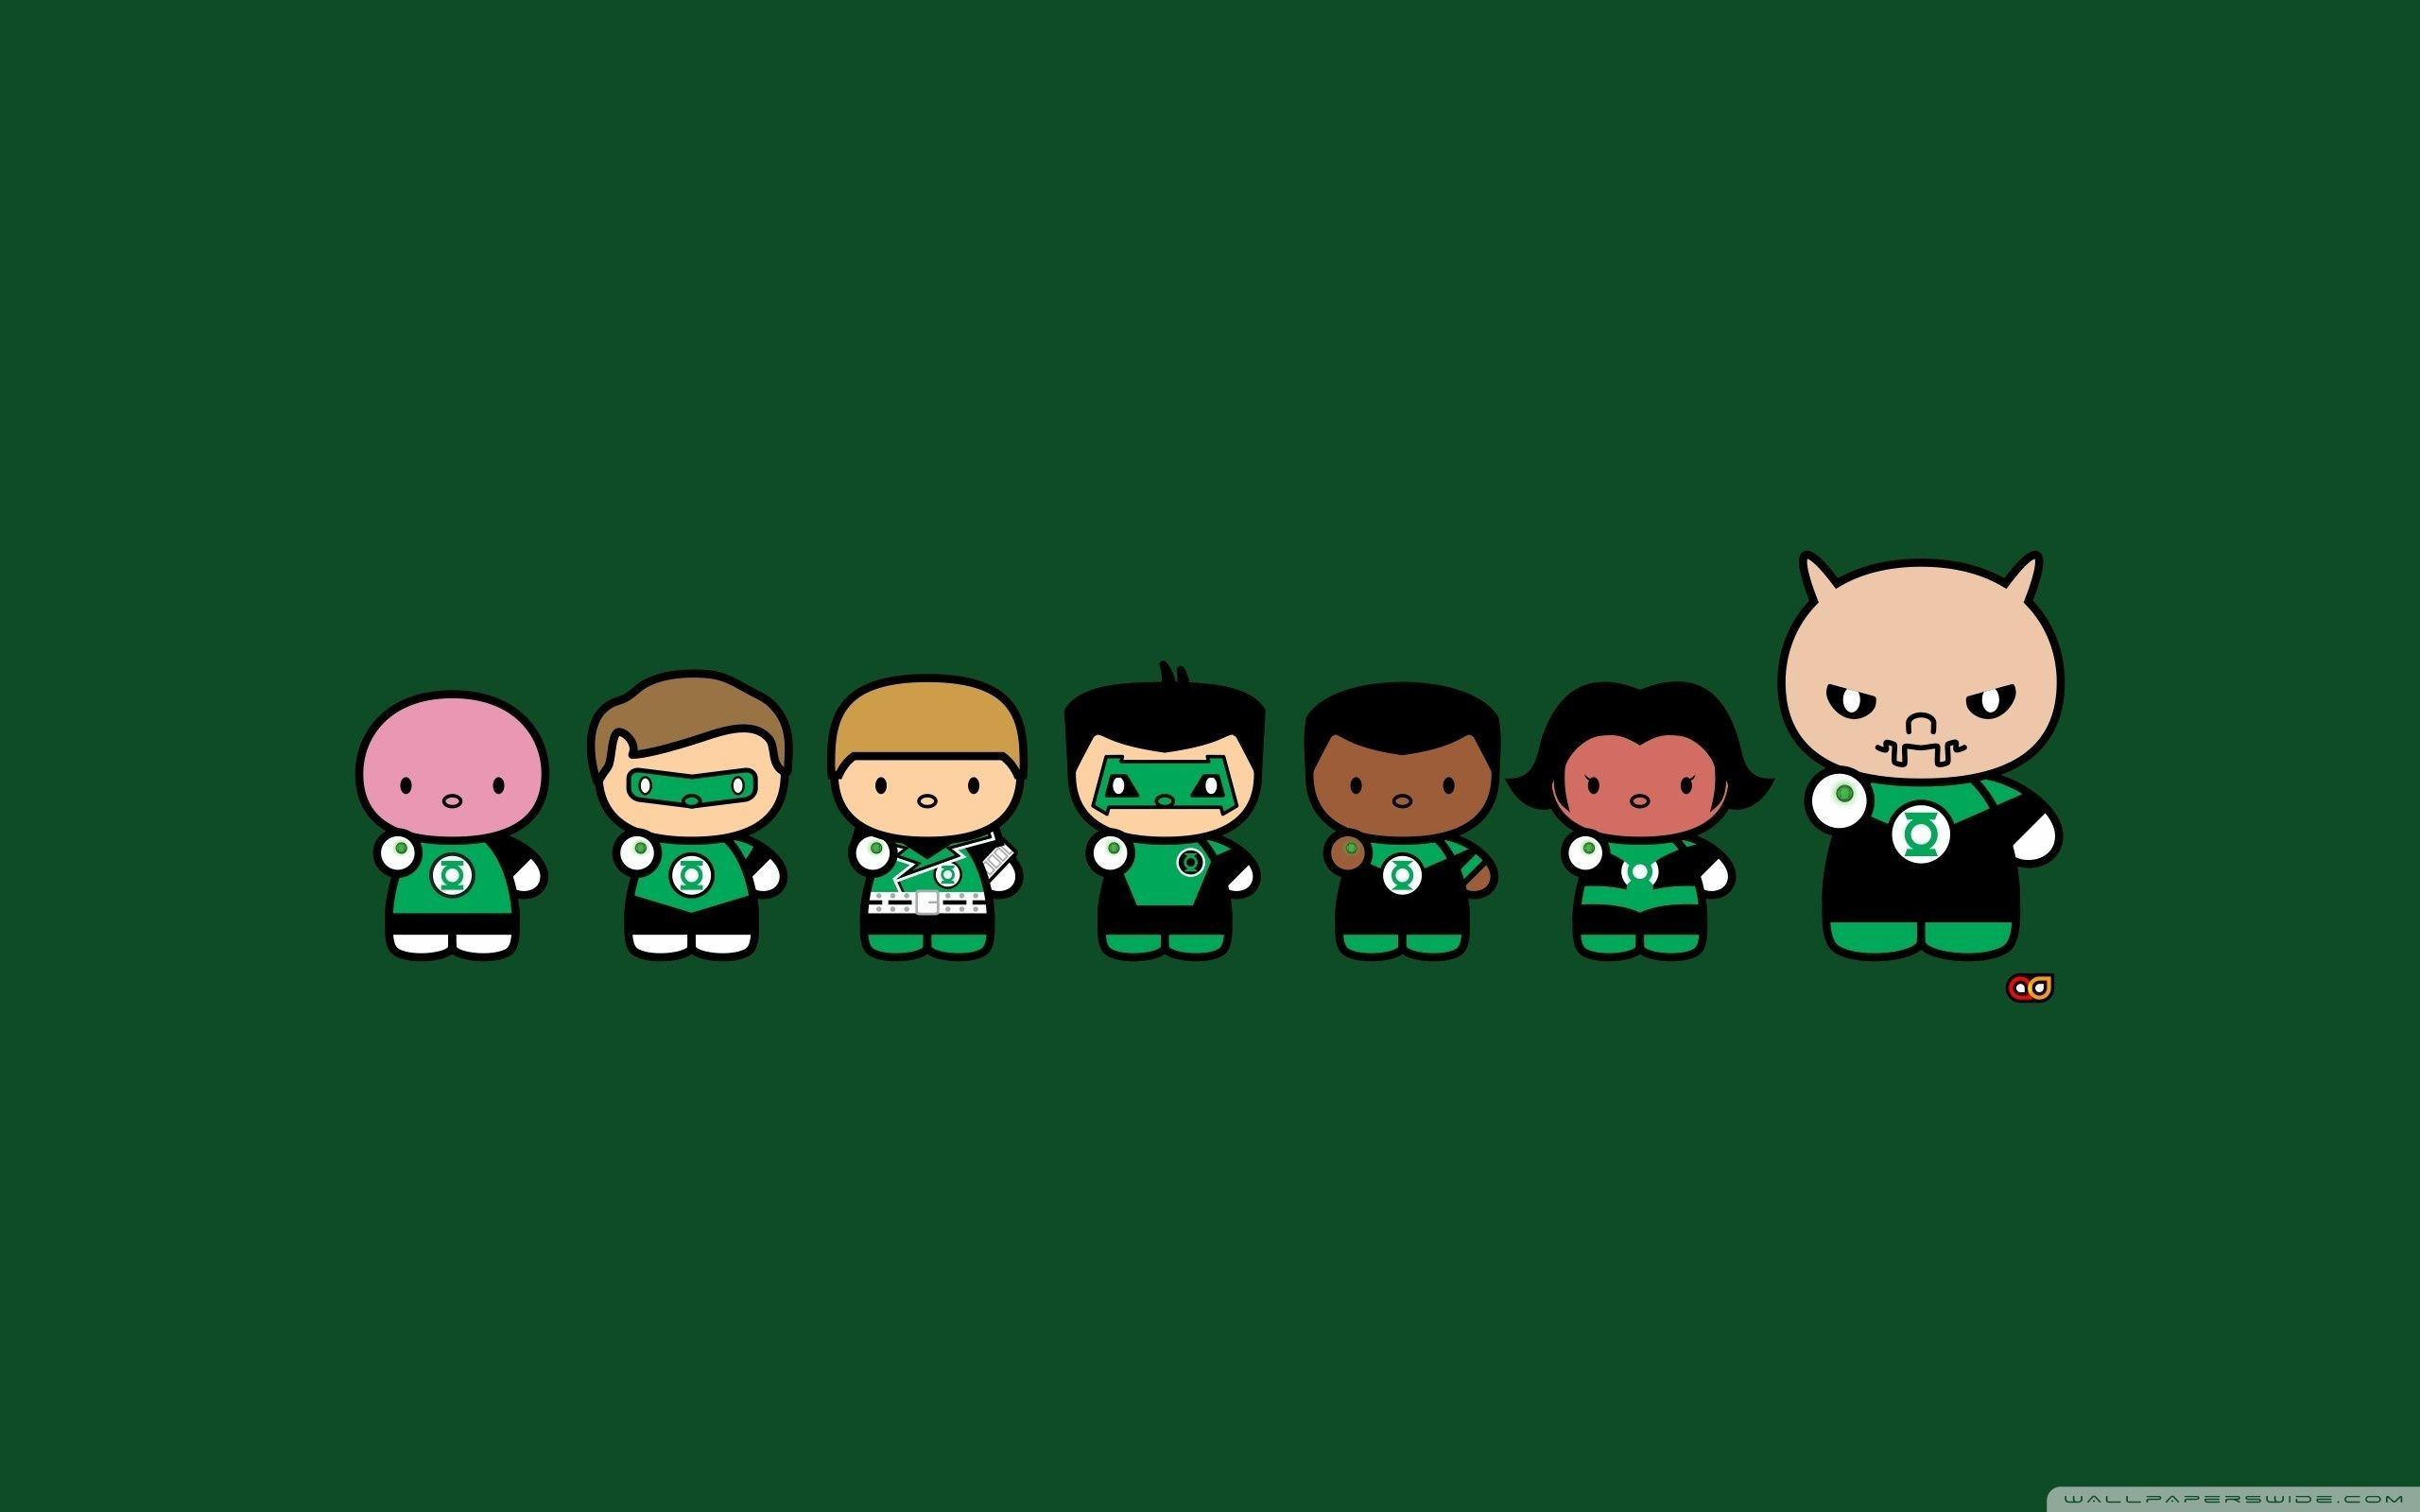 … Green Lantern Corps Hd Wide Wallpaper For. Download